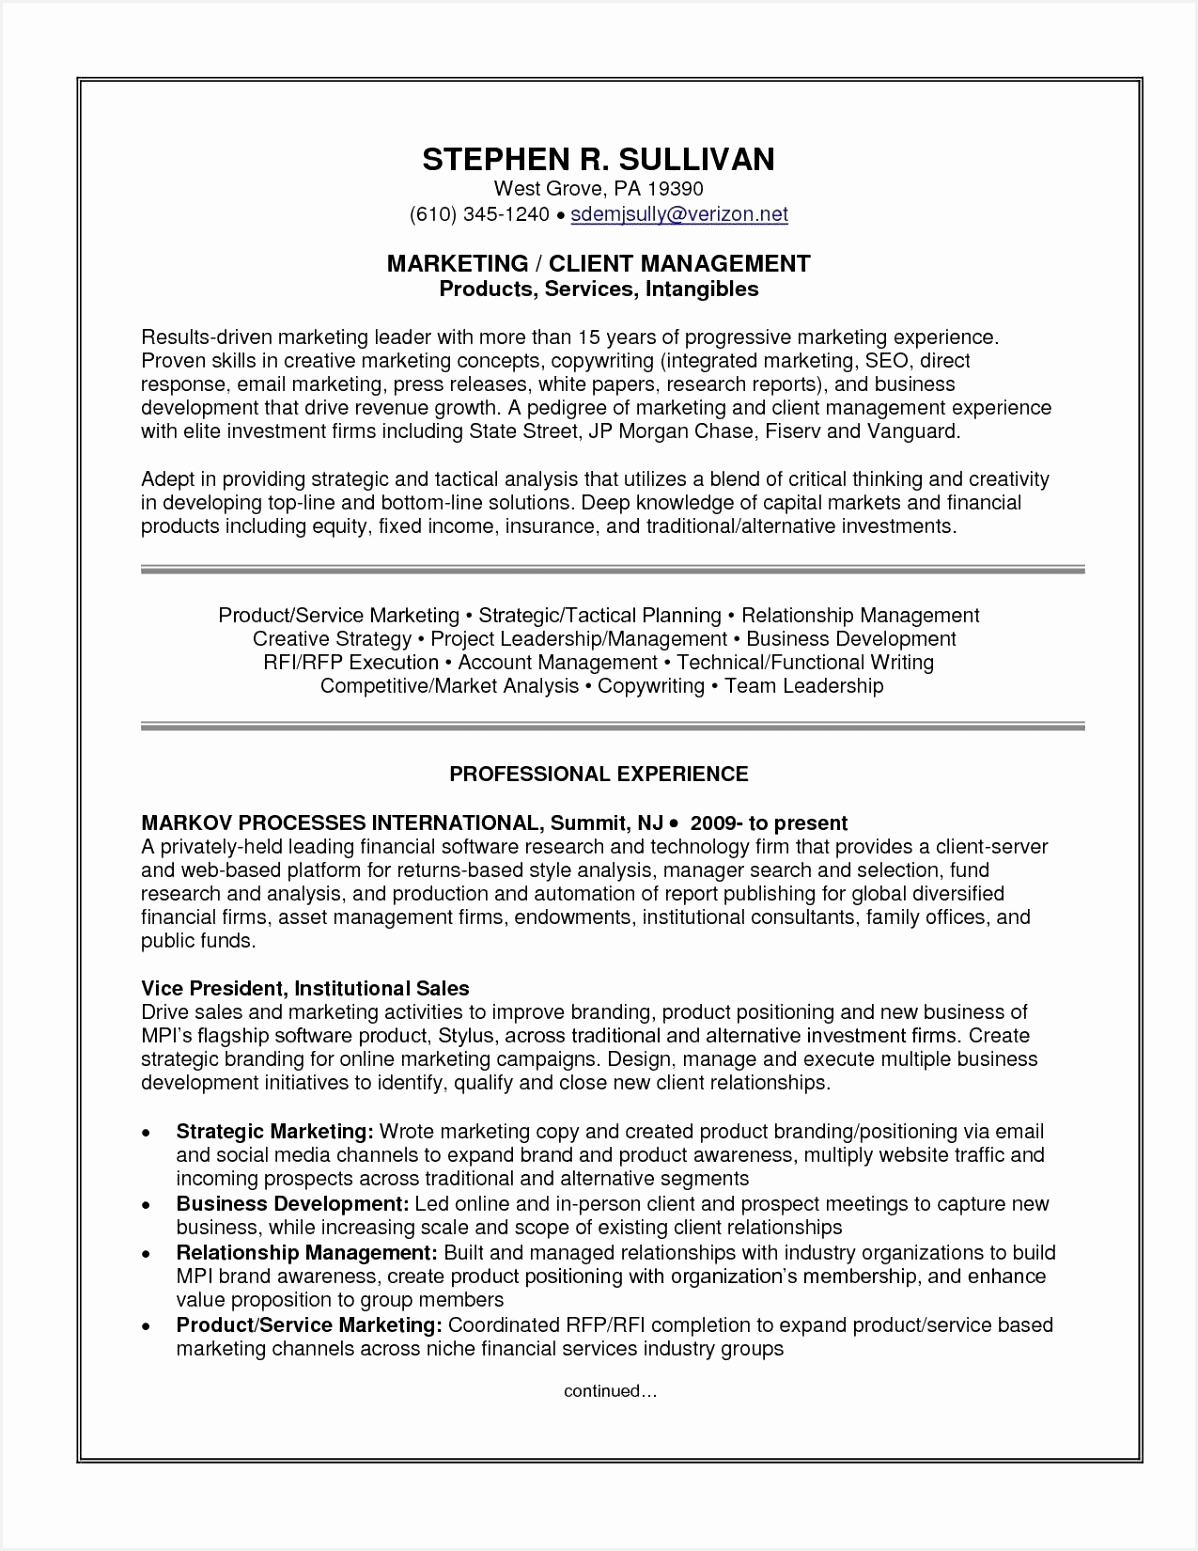 Skill Resume Examples Rkwgp Fresh Free Download Resume Optimization Free Resume Examples Skills and15511198